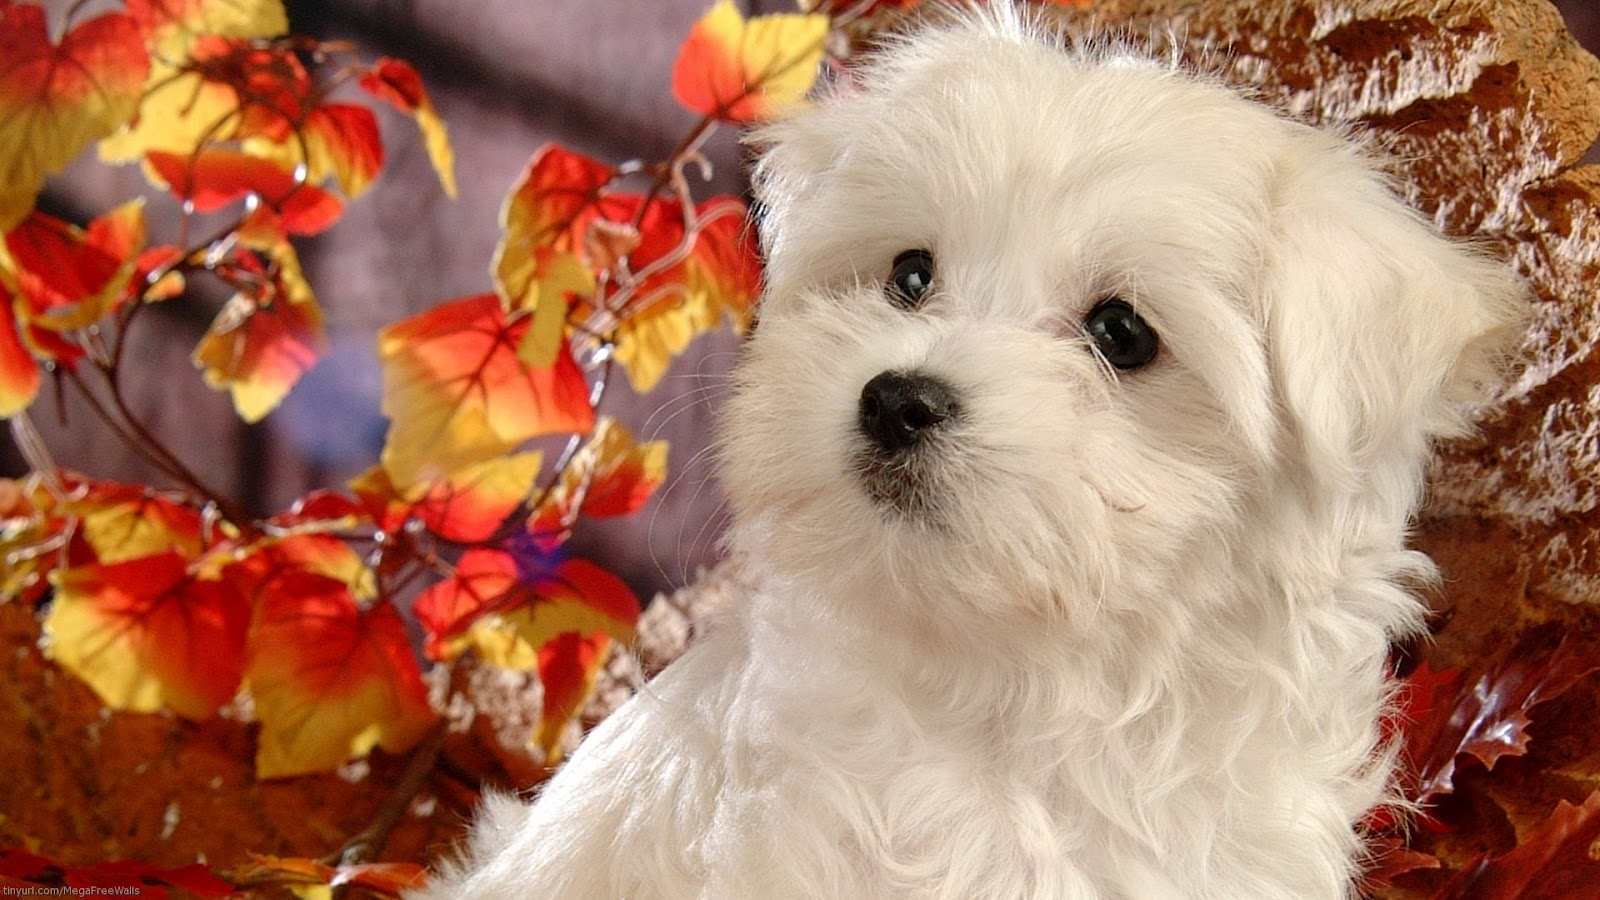 Very Cute Puppy Wallpapers Wallpaper Collection For Your Computer And Mobile Phones